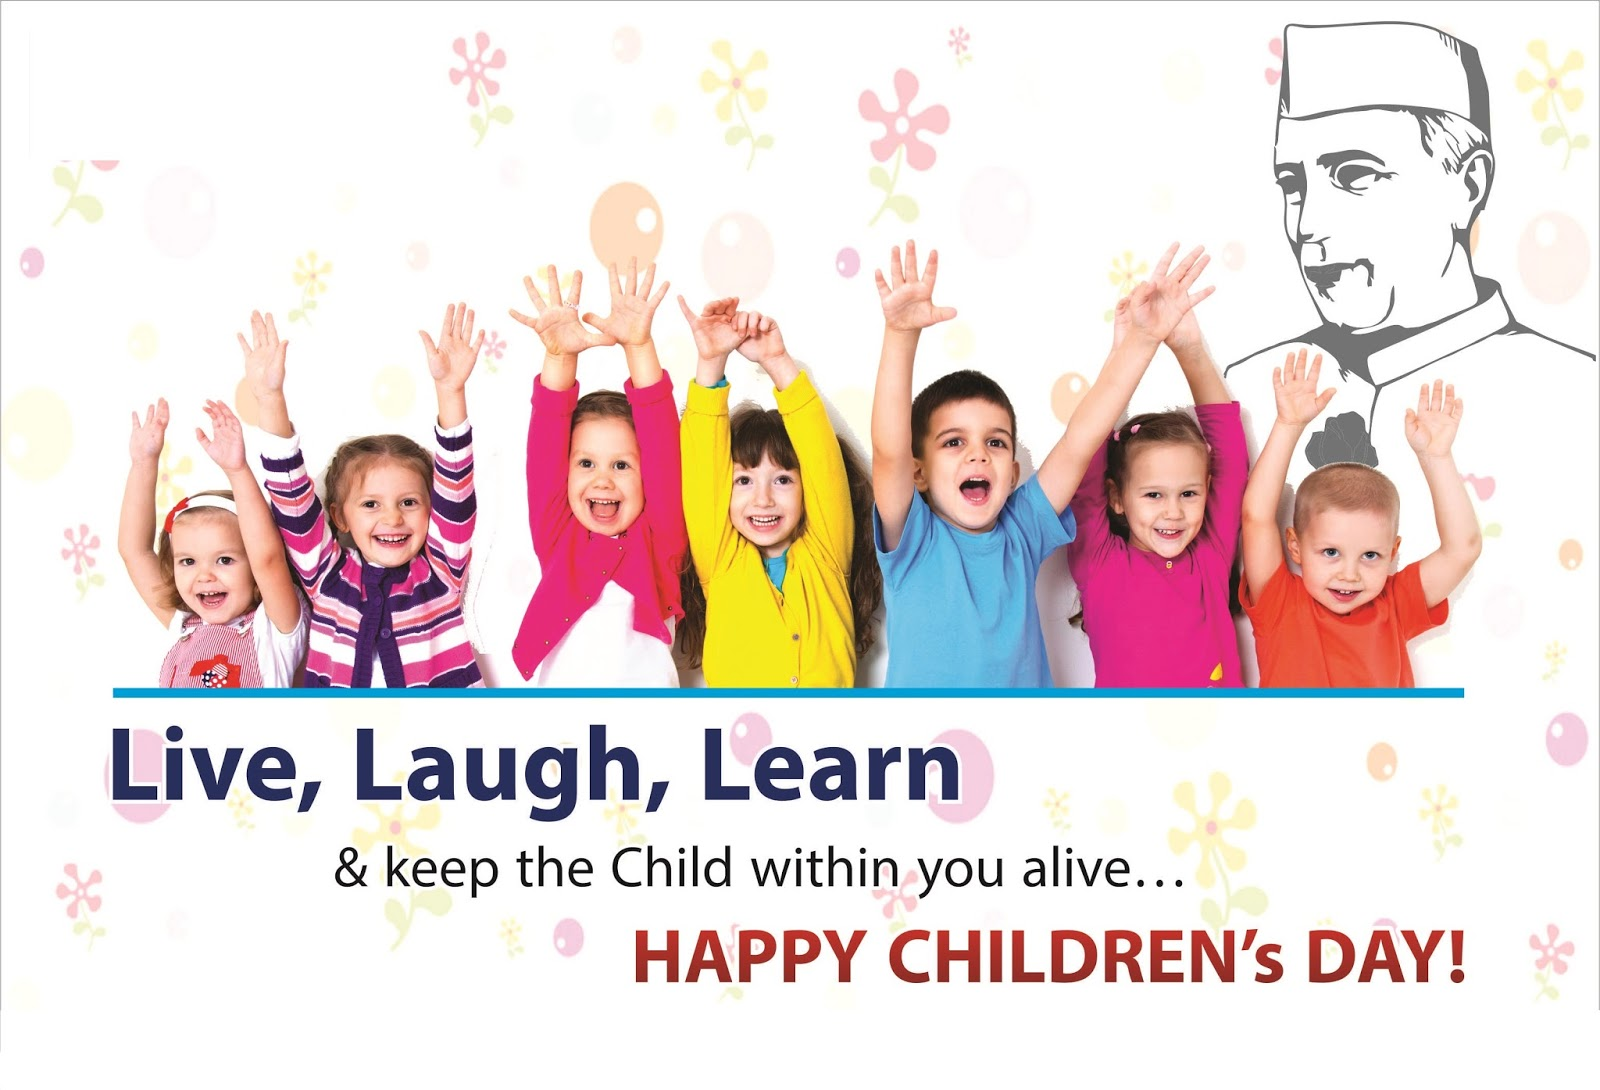 Happy Children's Day 2018: Celebration Ideas and Tips for Schools